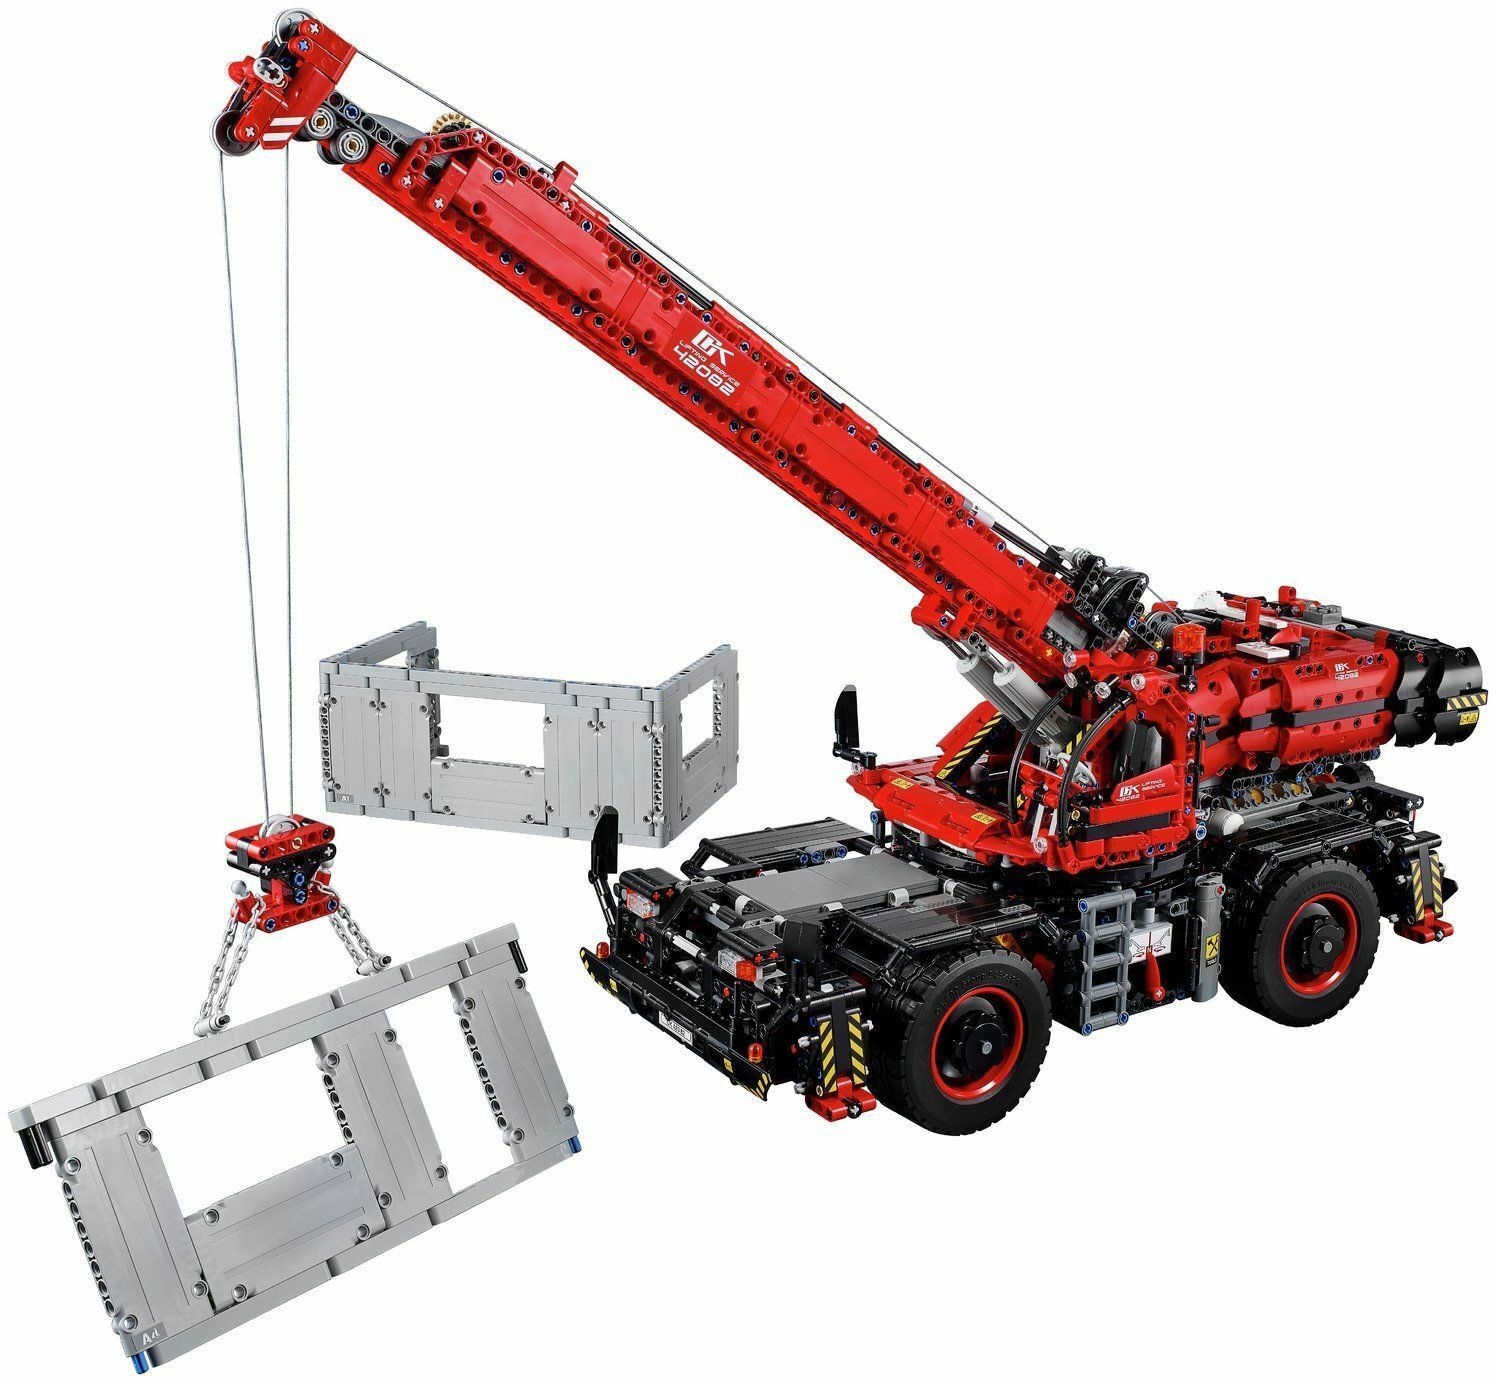 LEGO Technic Rough Terrain Crane - 42082 - 11+ Years